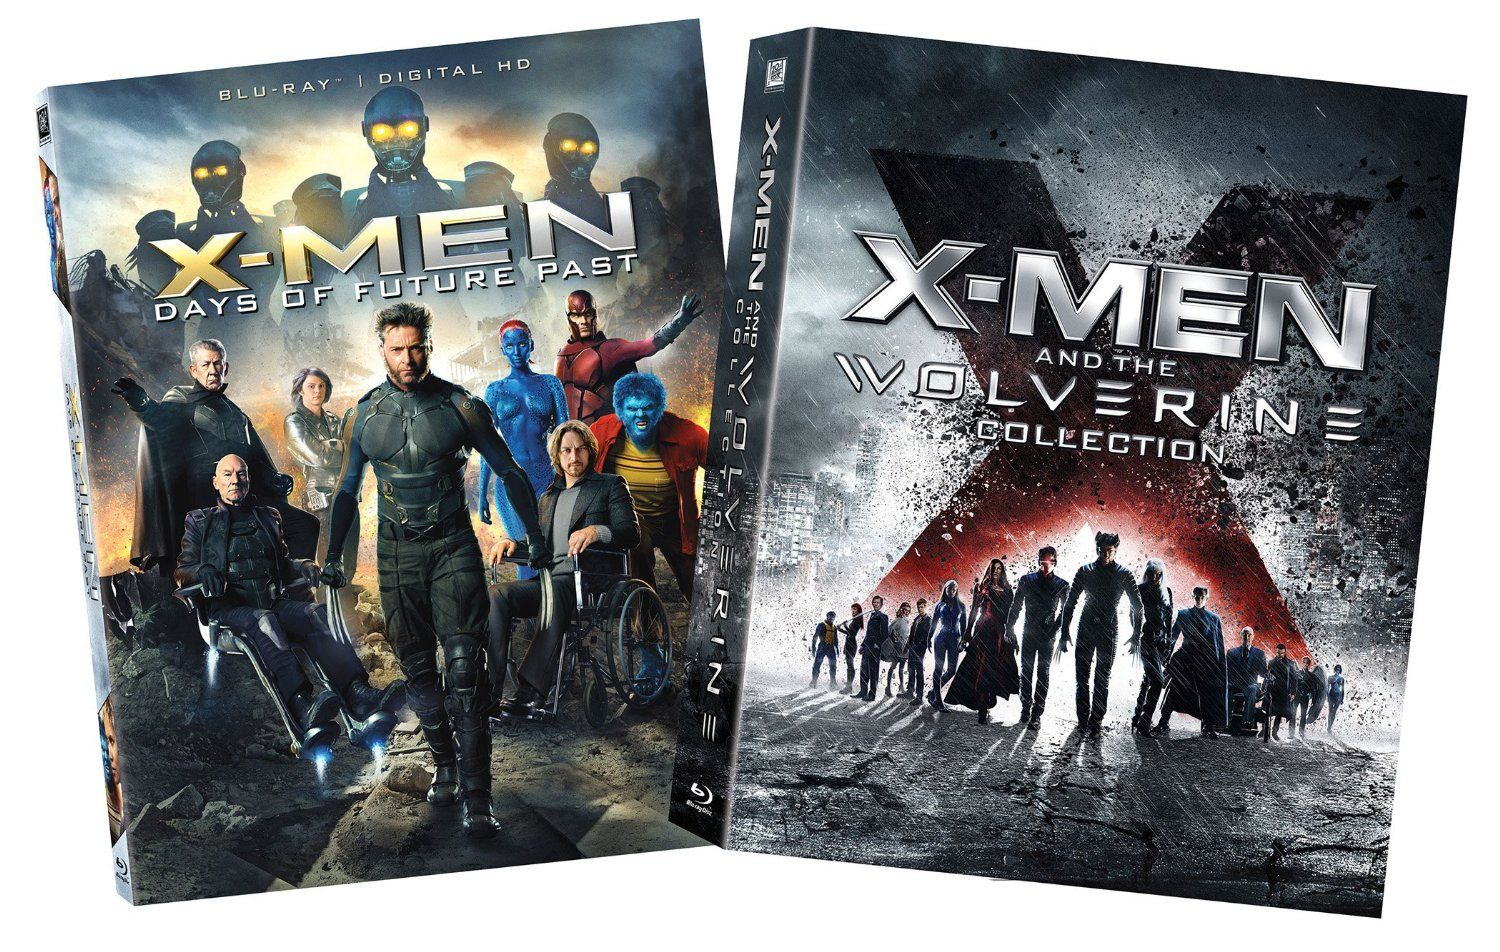 X Men Days Of Future Past And Wolverine Collection Blu Ray 31 98 Reg 99 99 X Men Days Of Future Past Blu Ray